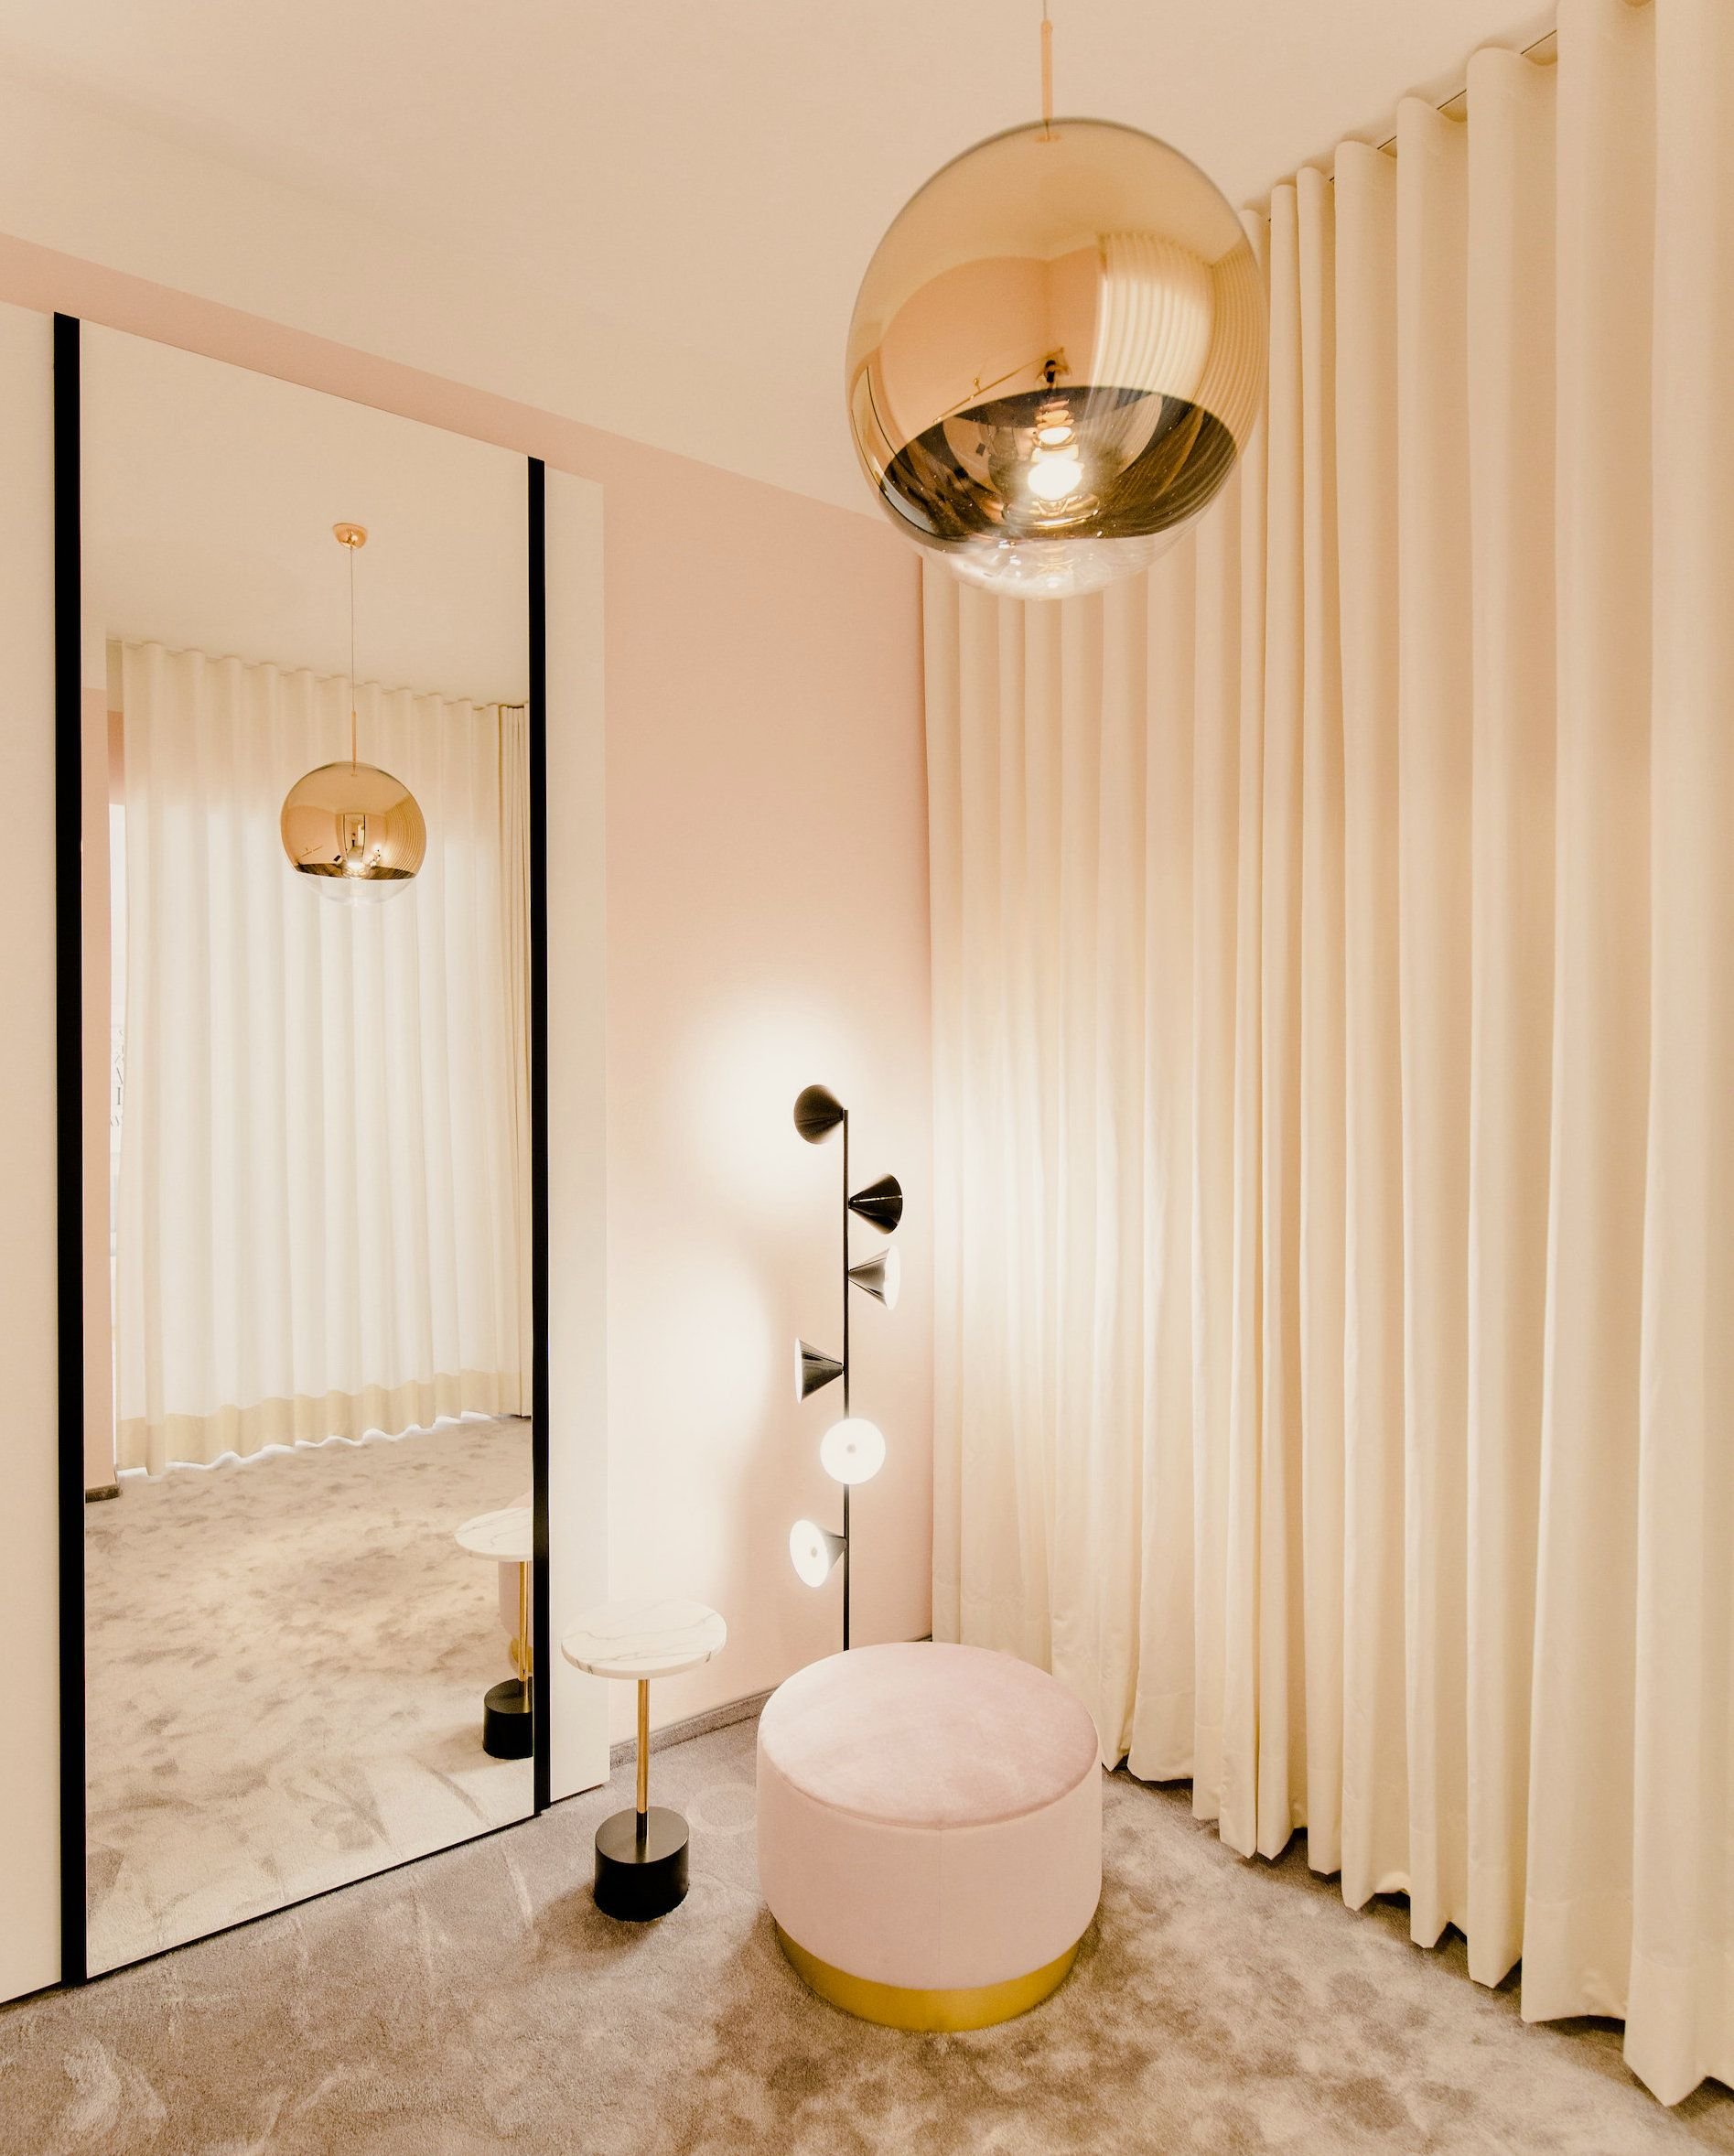 Interior design changing room of say yes munich for Interior design munich